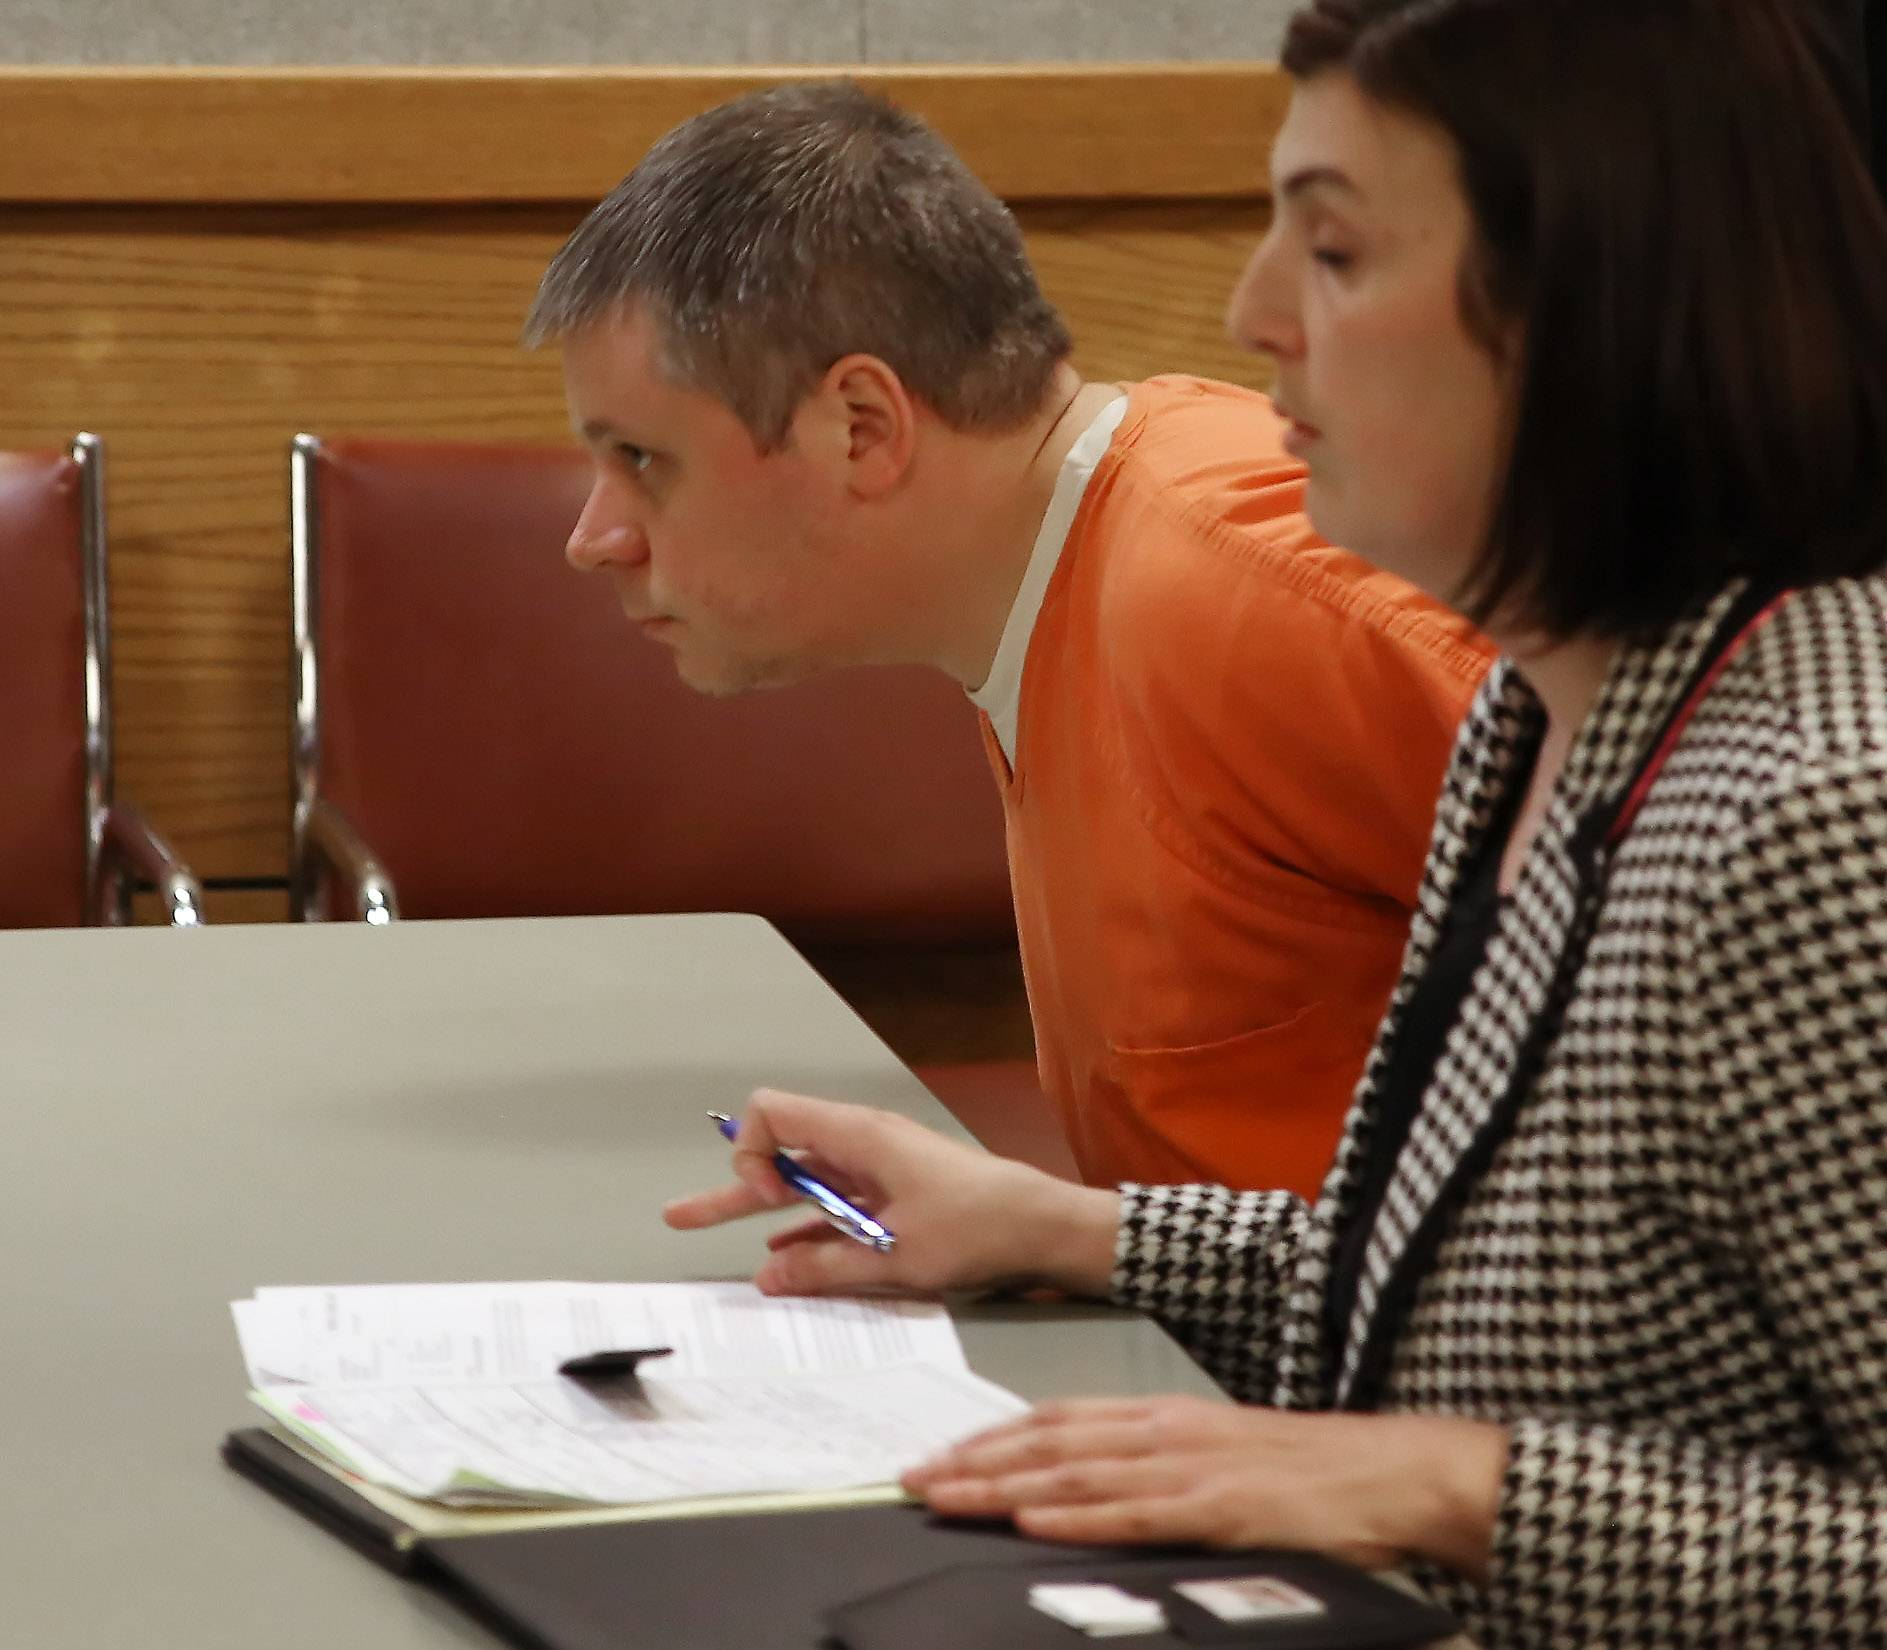 James P. Eaton, charged in the 1997 murder of 14-year-old Palatine resident Amber Creek, with his Public Defender Katie Gutowski during his first appearance in a Racine County courtroom since his arrest over the weekend.